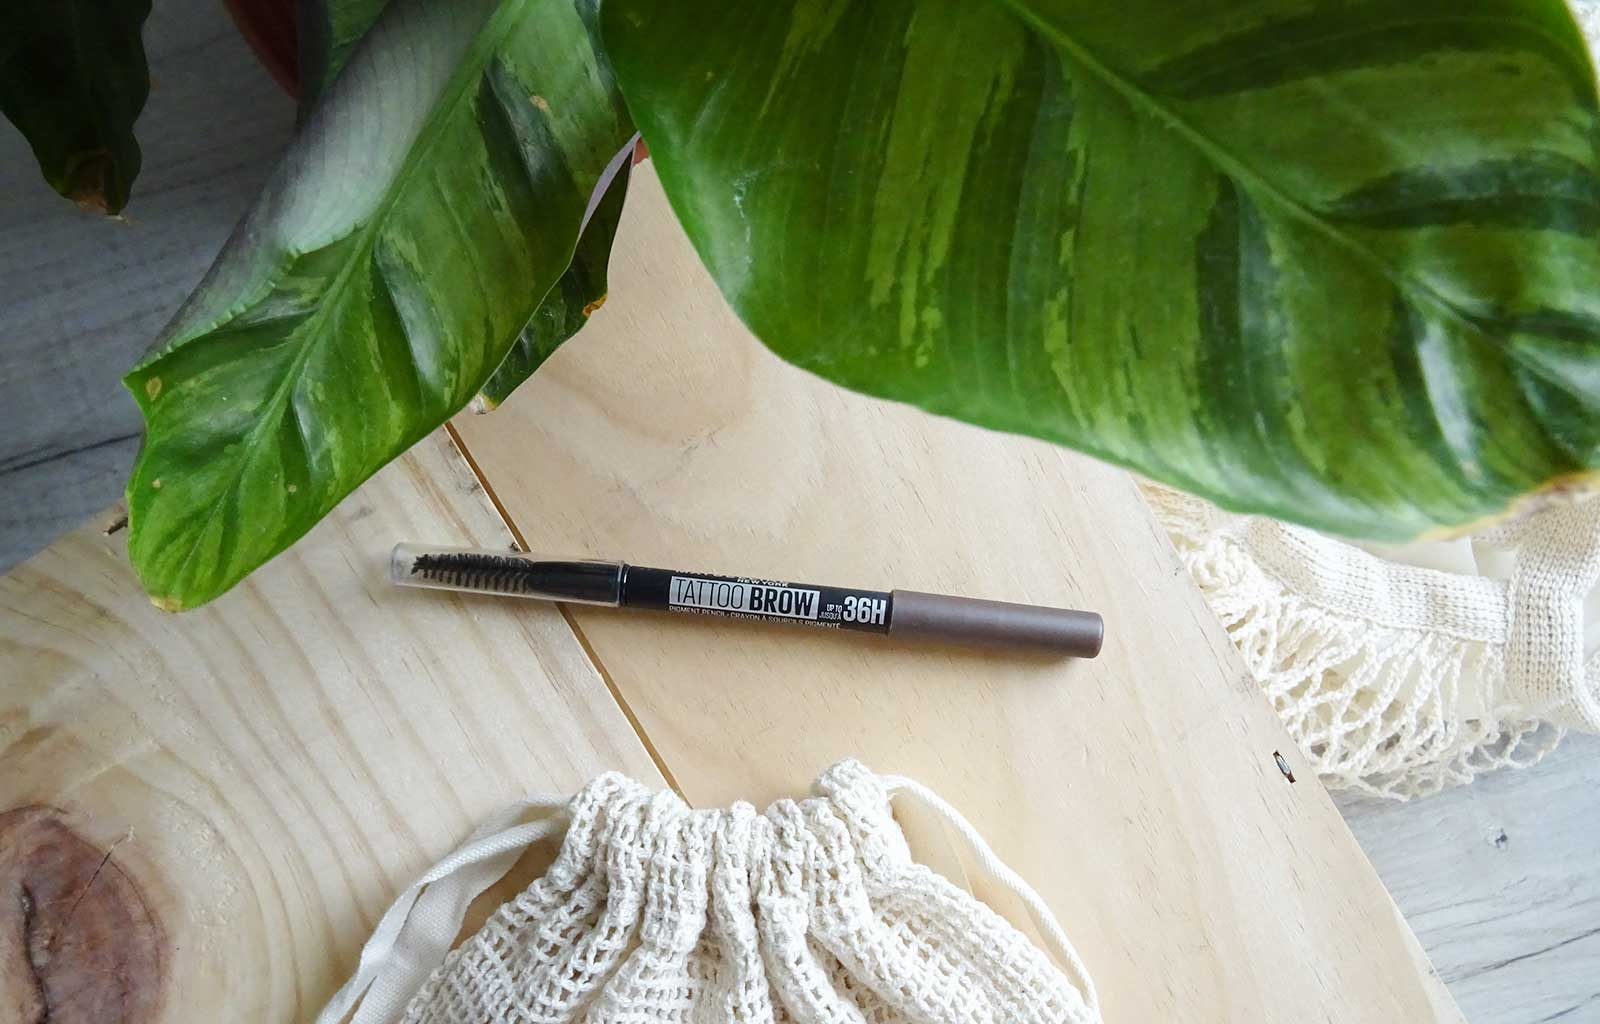 crayon tattoo brow 36h maybelline